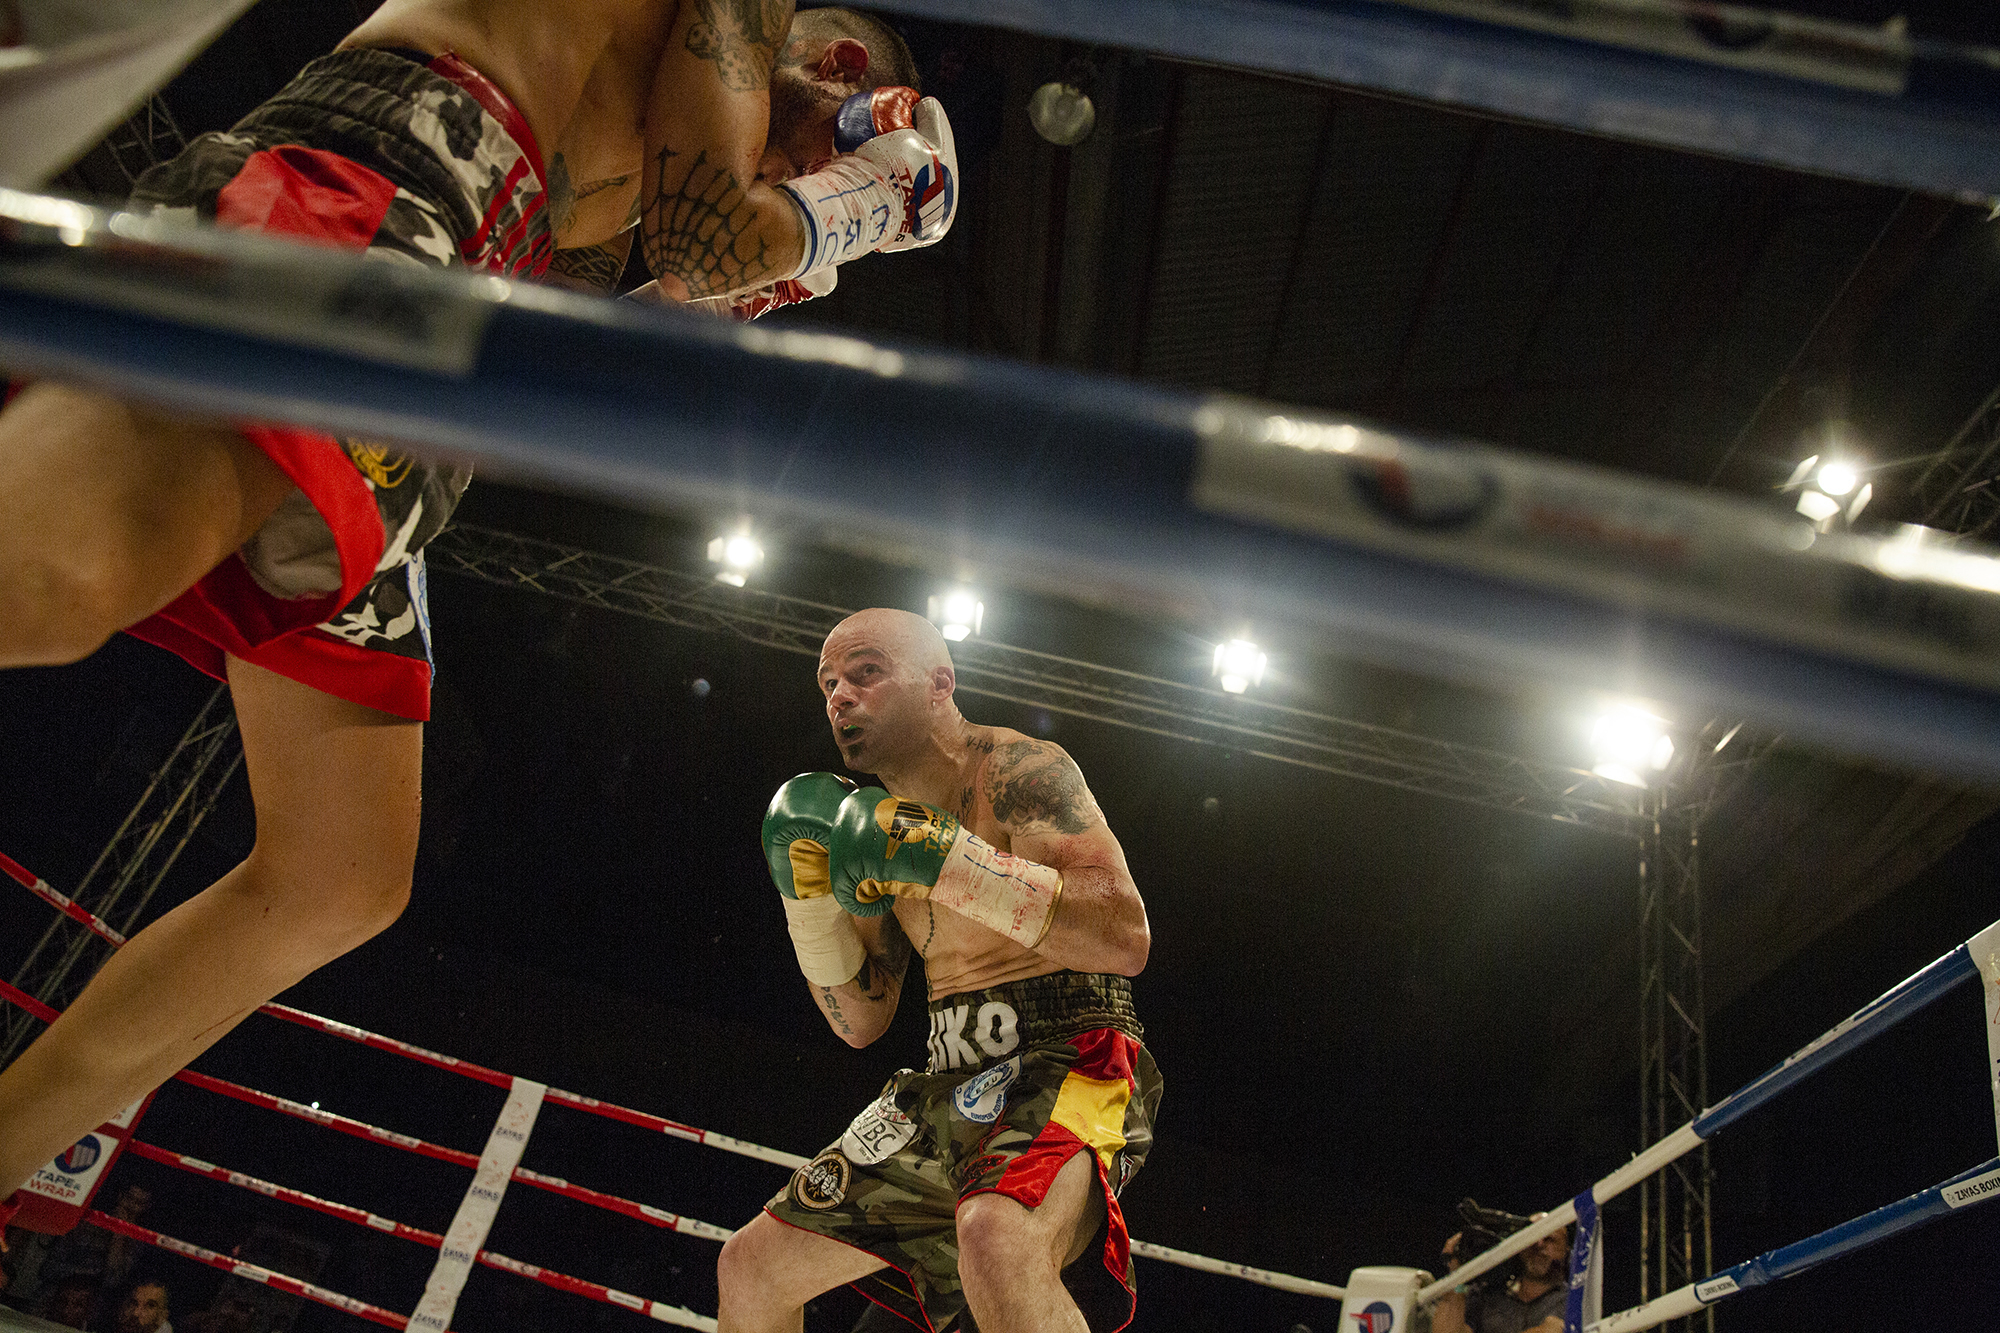 The two-time former champion Martinez charges strong against the young Spanish talent Marc Vidal.